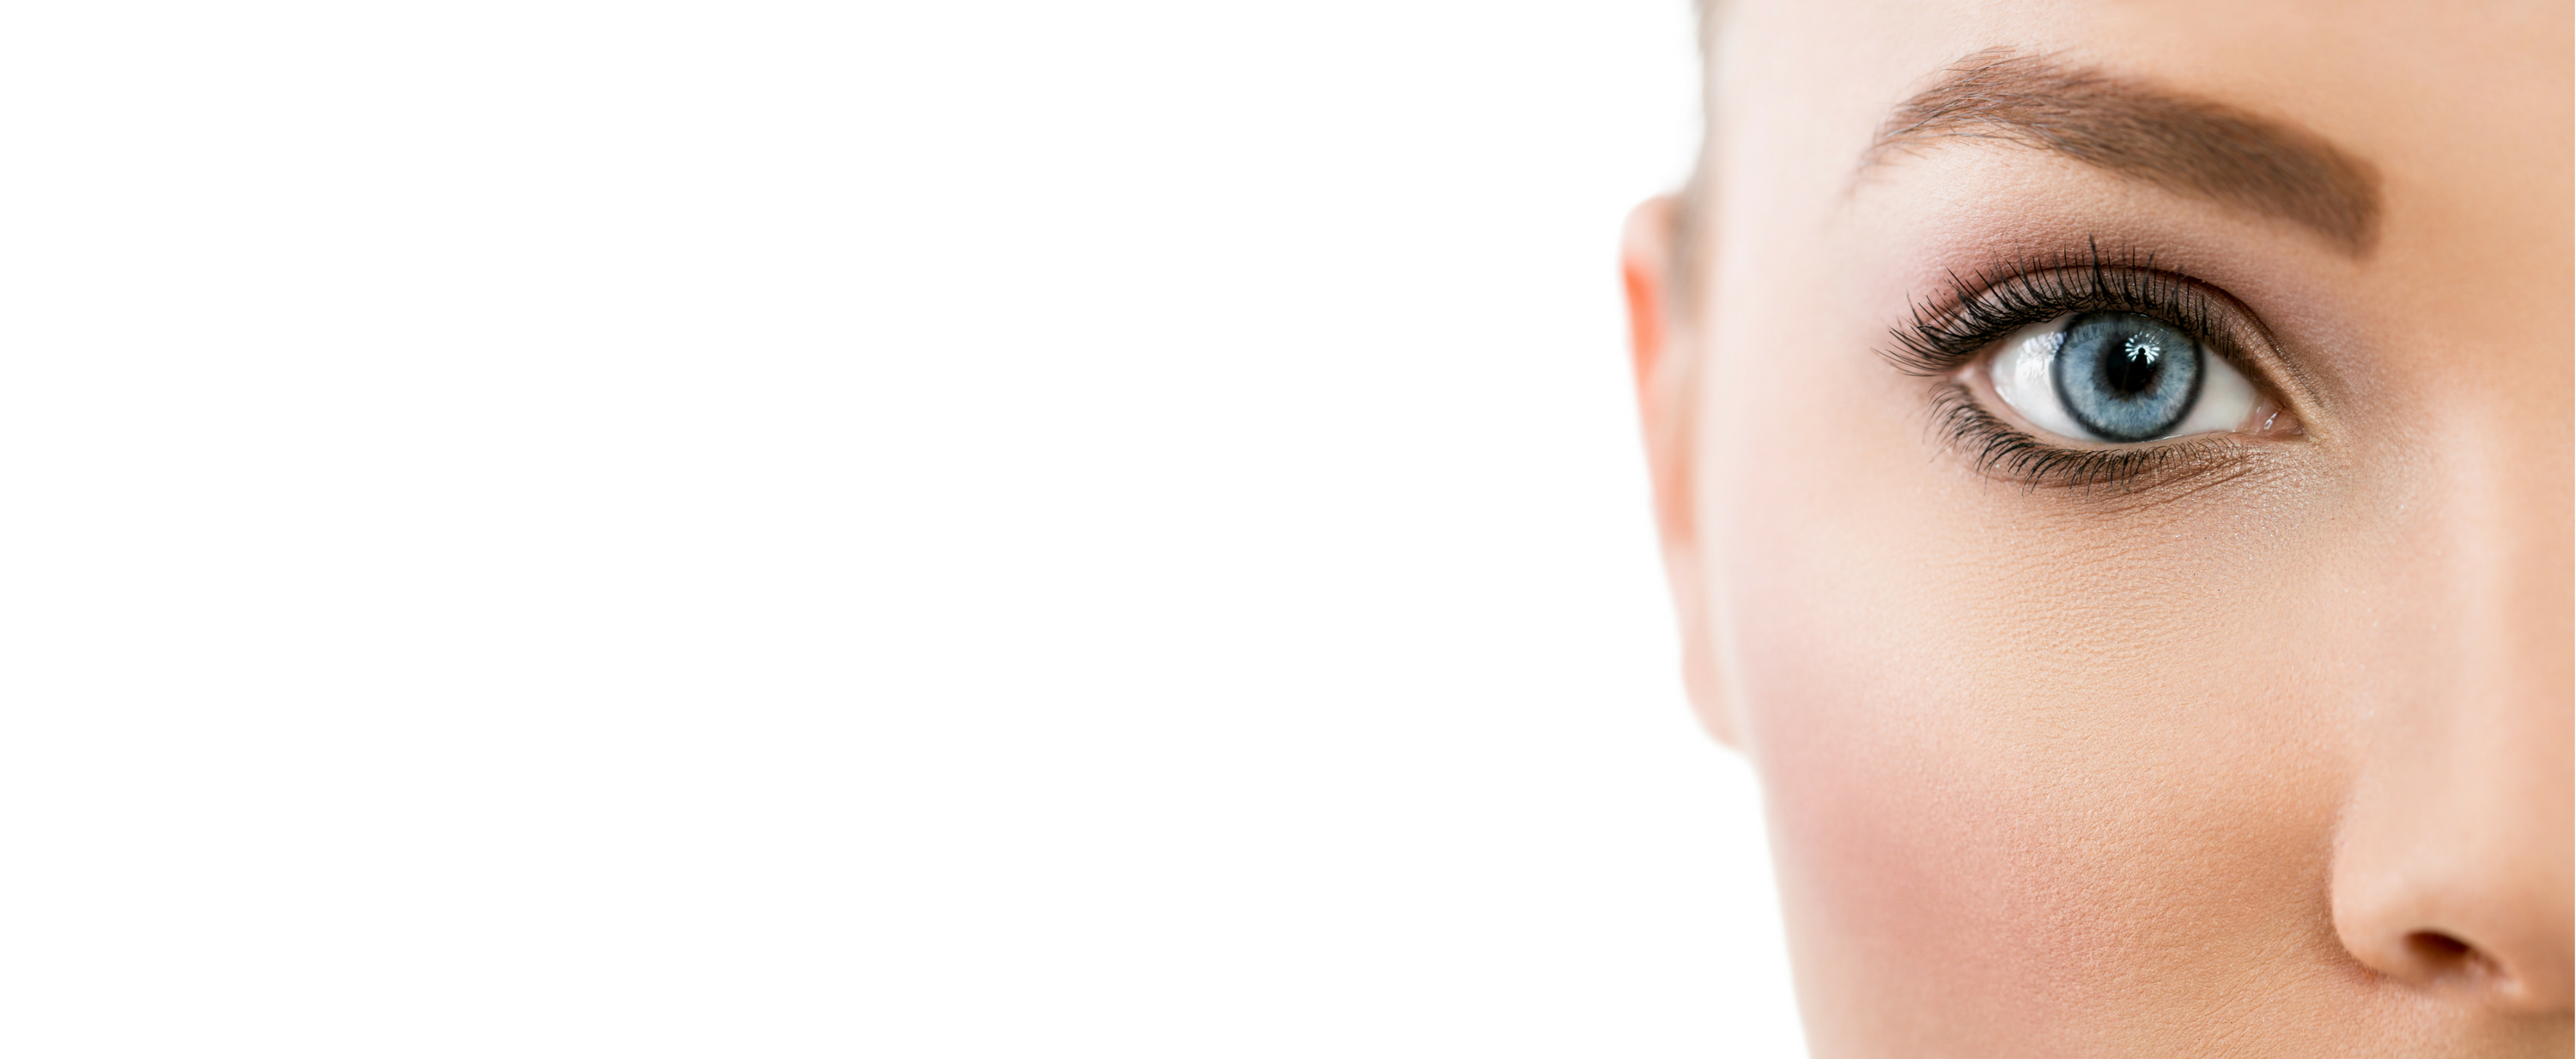 Permanent eyeliner tattoo aftercare